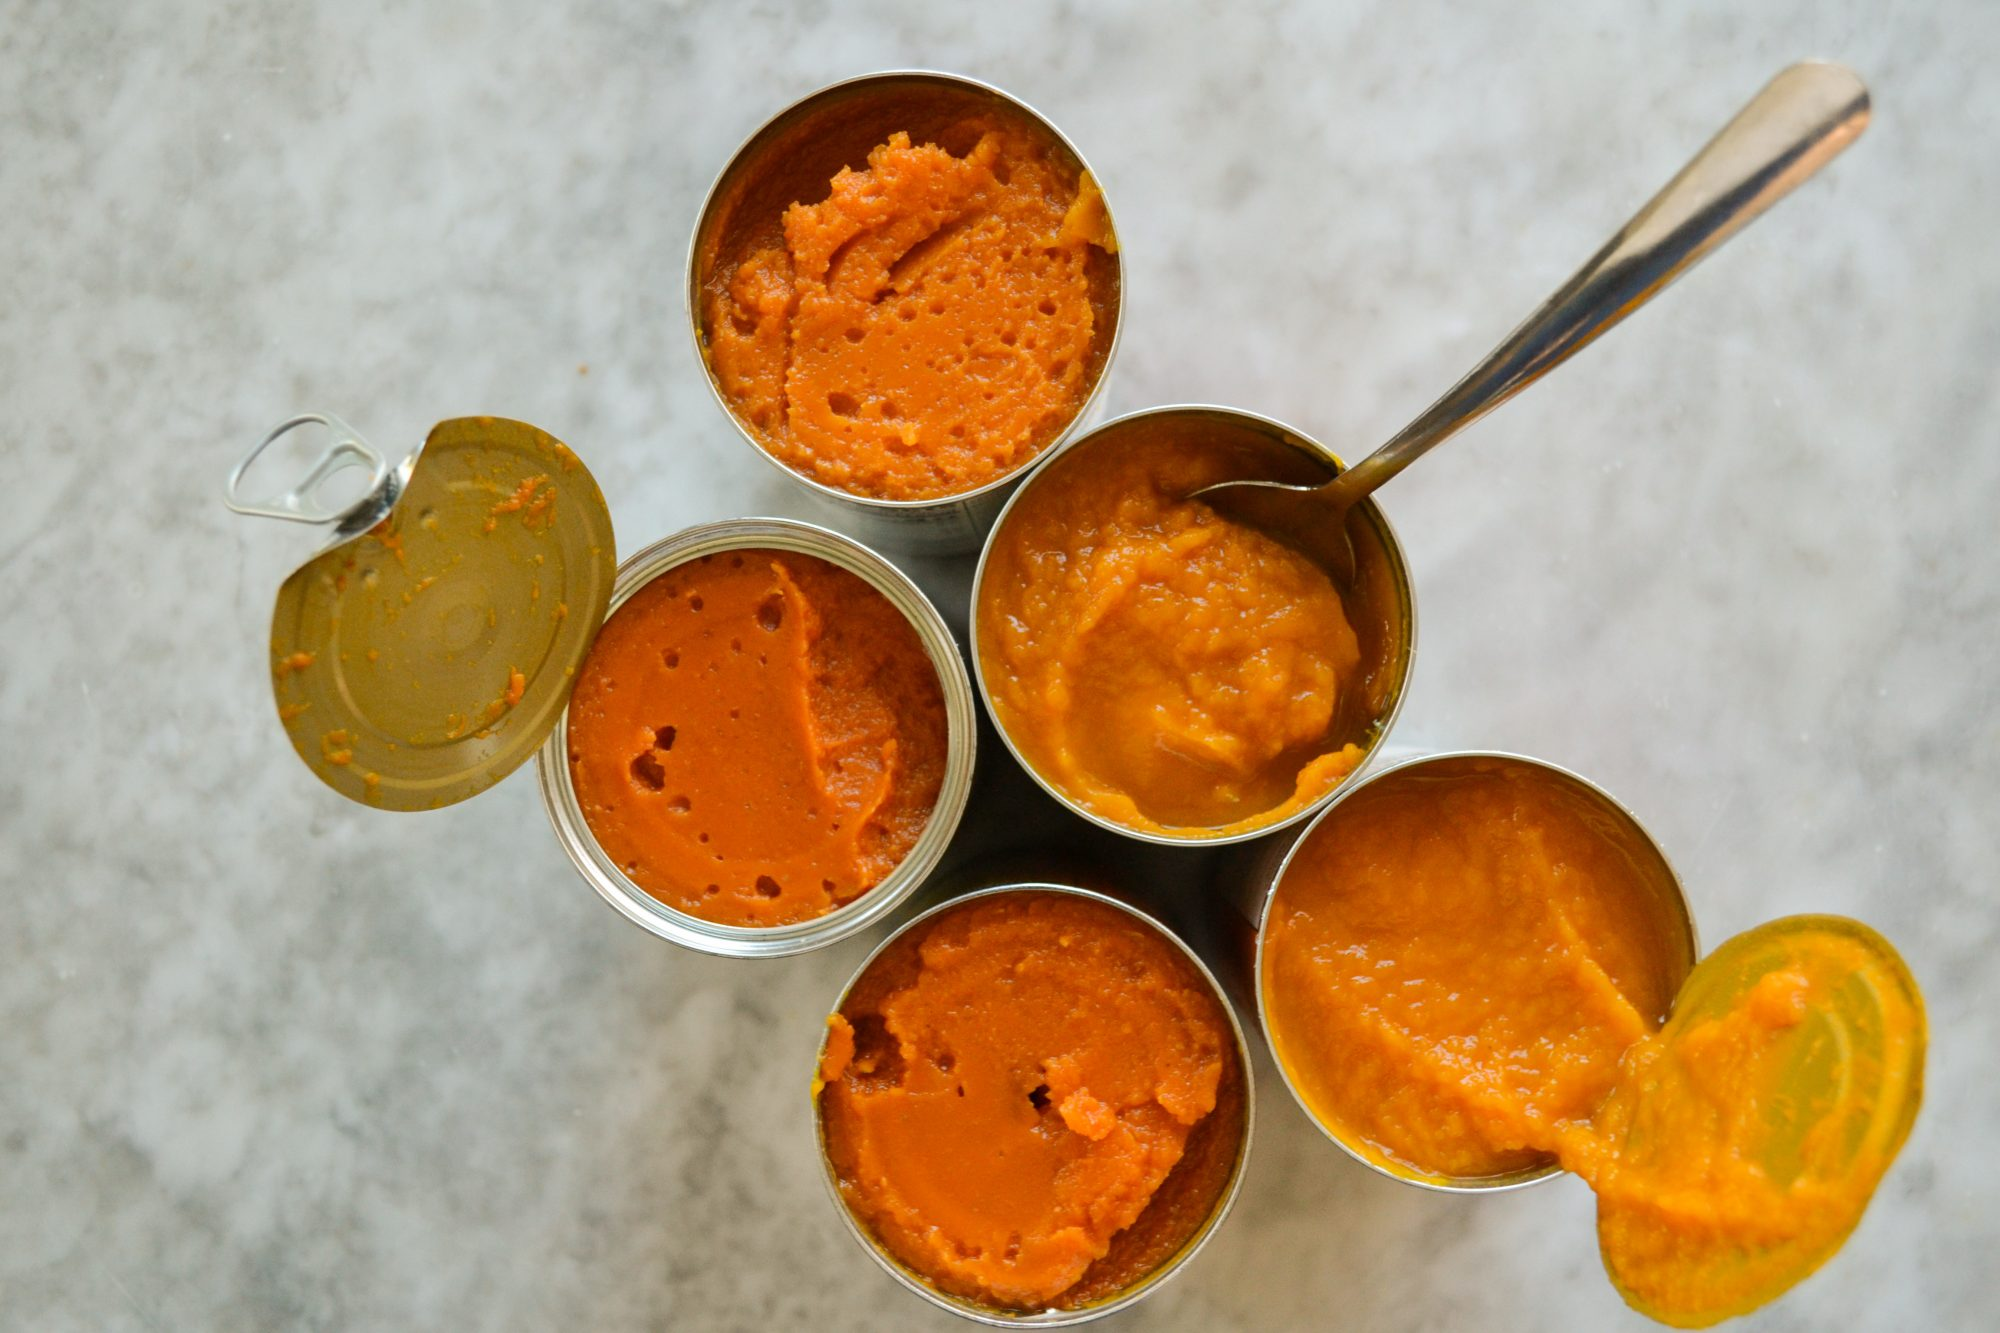 Pumpkin Puree Taste Test